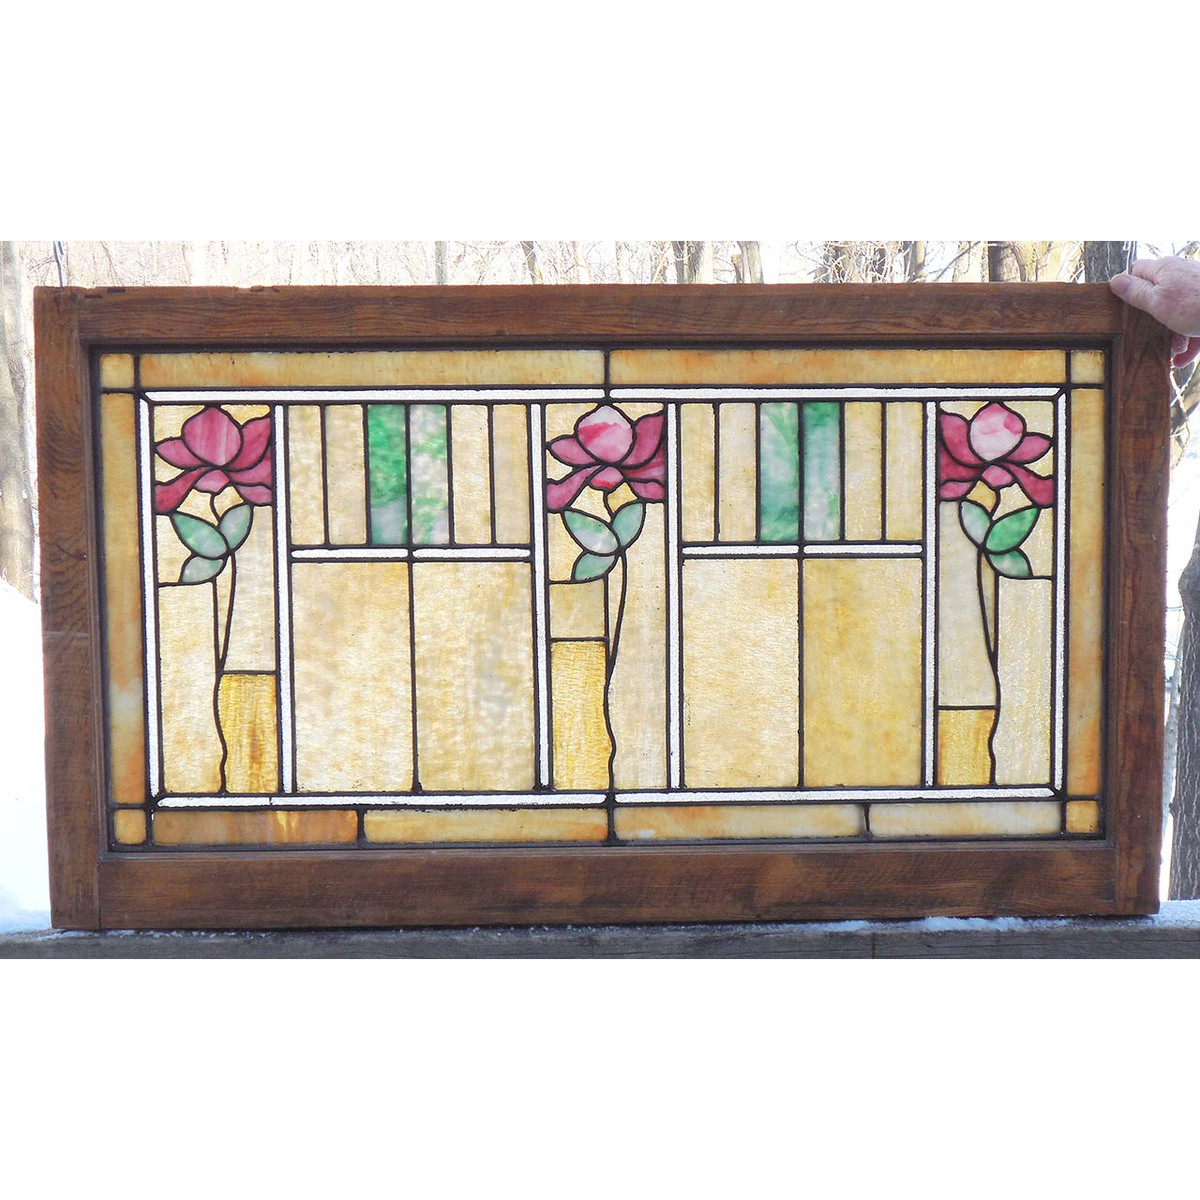 G14020 - Antique Arts and Crafts Stained Glass Window